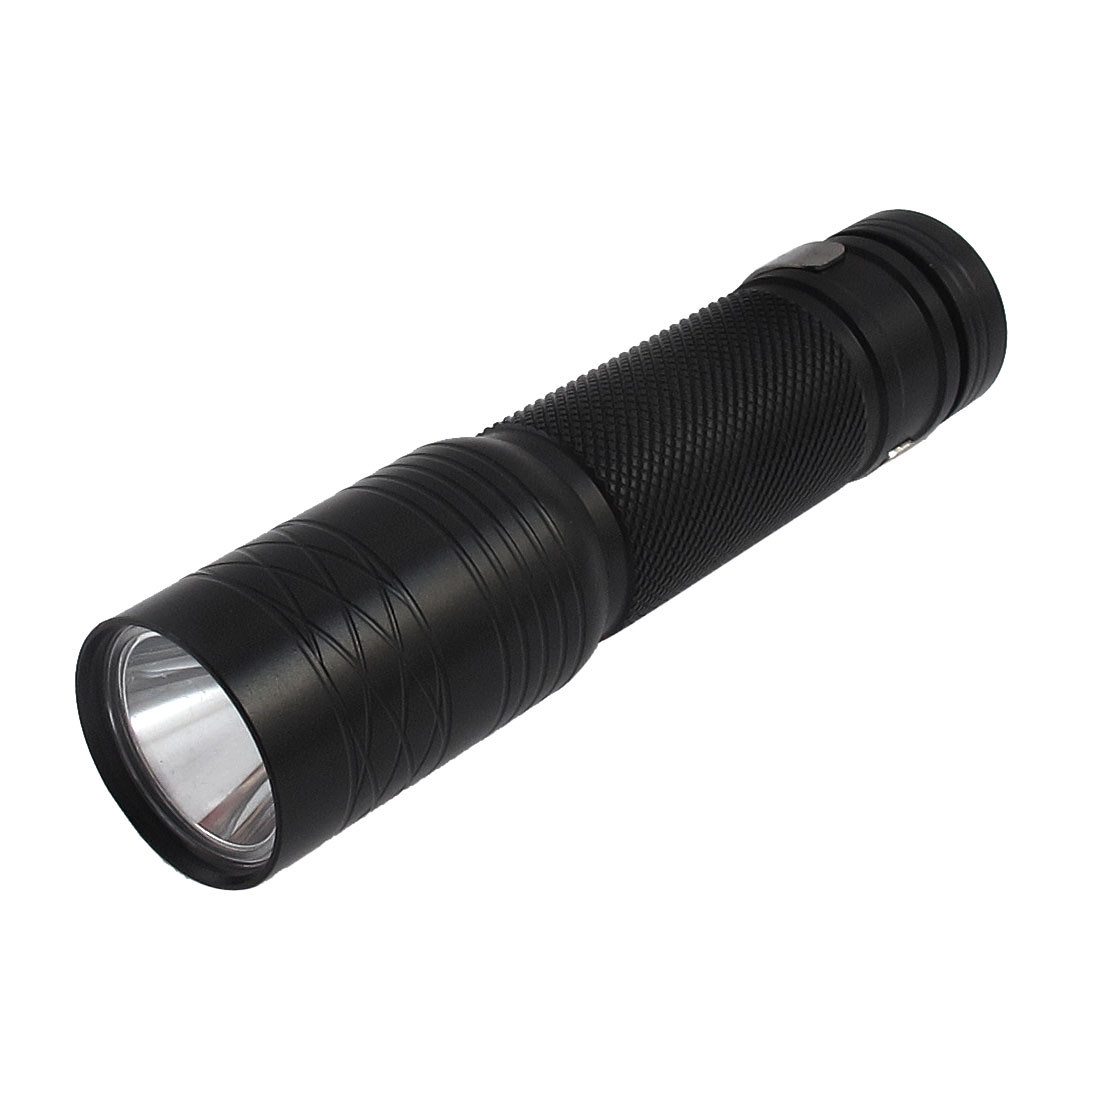 Black Aluminum Alloy Shell Battery Powered 2 Mode White LED Light Mimi Flashlight Torch